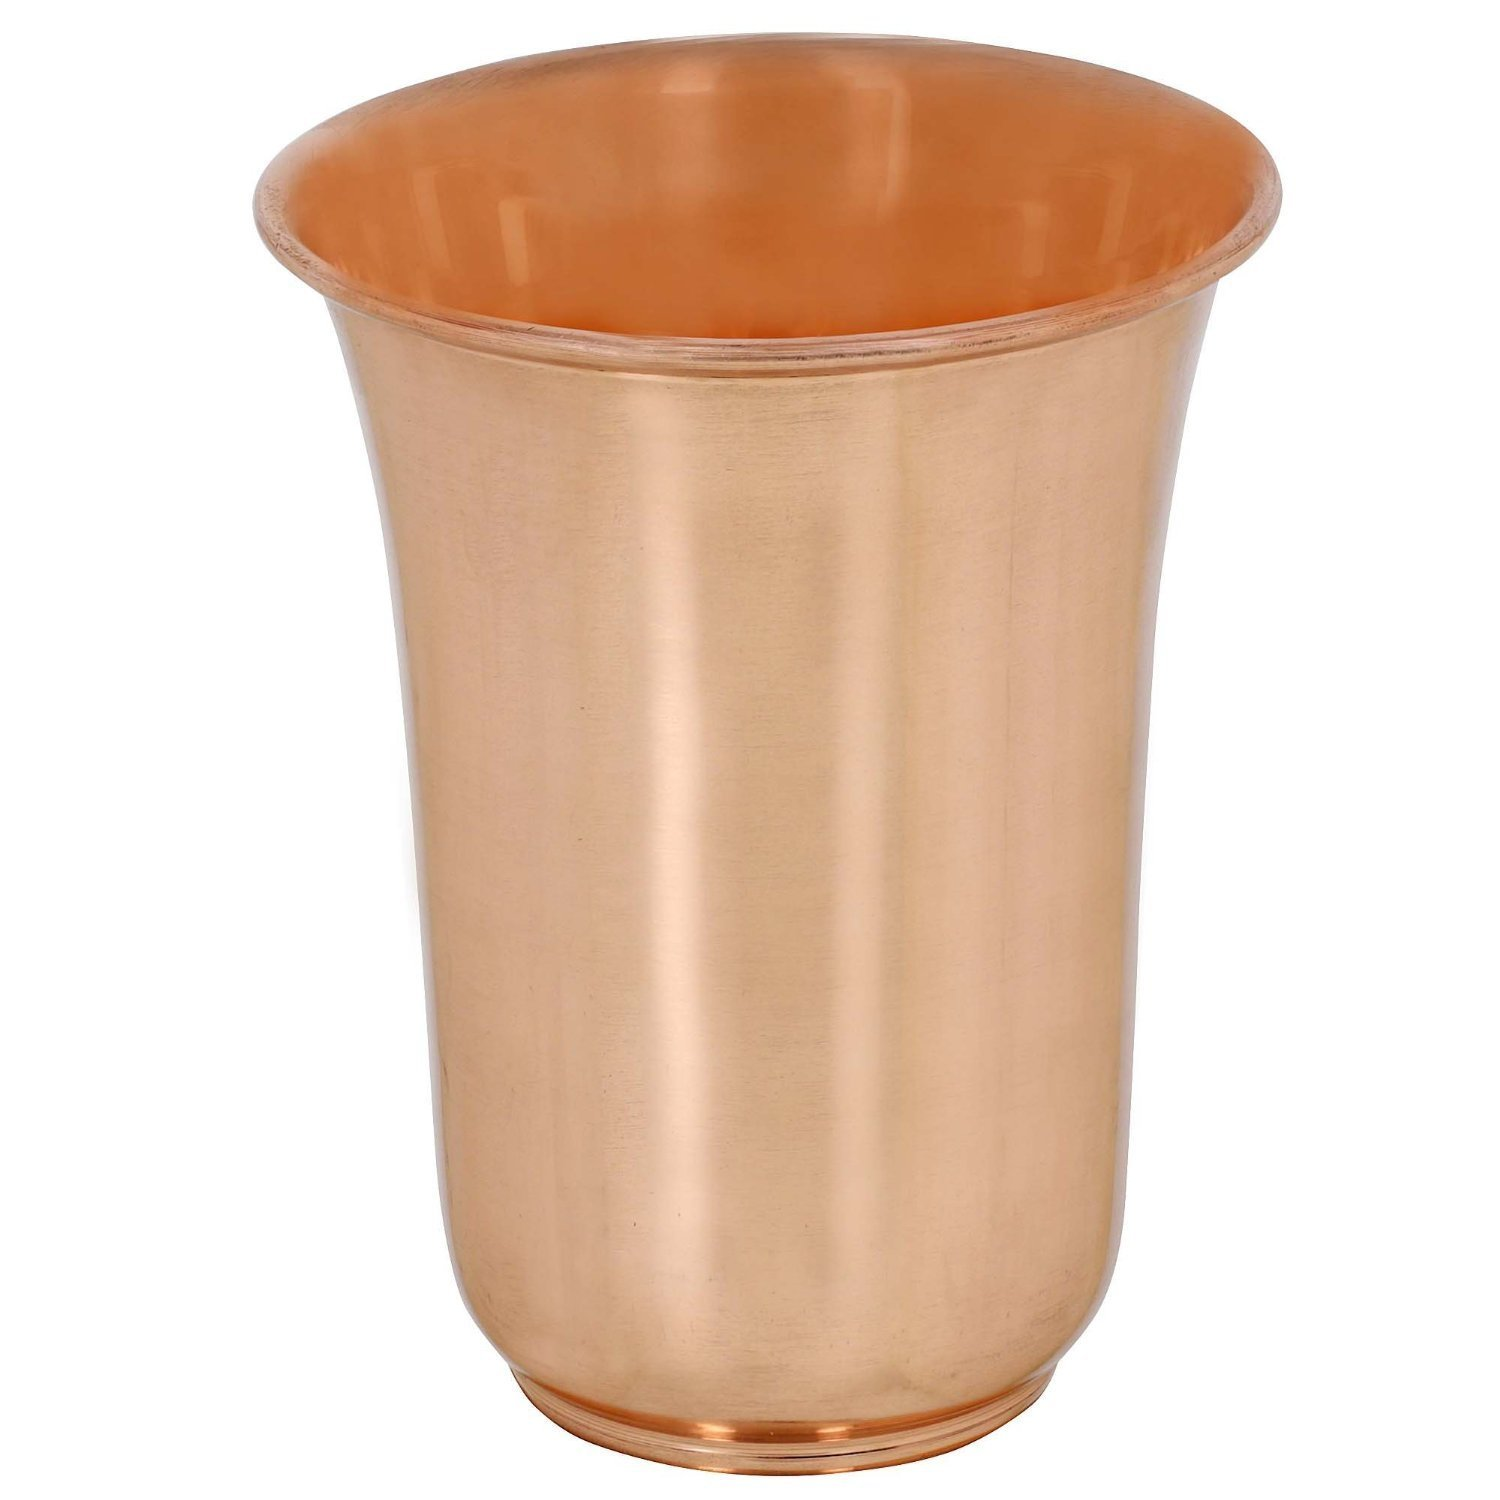 Glass - Set of 2 Pure Copper Tumblers Ayurvedic Water Drinking Glasses Serveware drinkware, Capacity 350 Ml for Ayurvedic Health Benefits. For Home, kitchen, Restaurants.